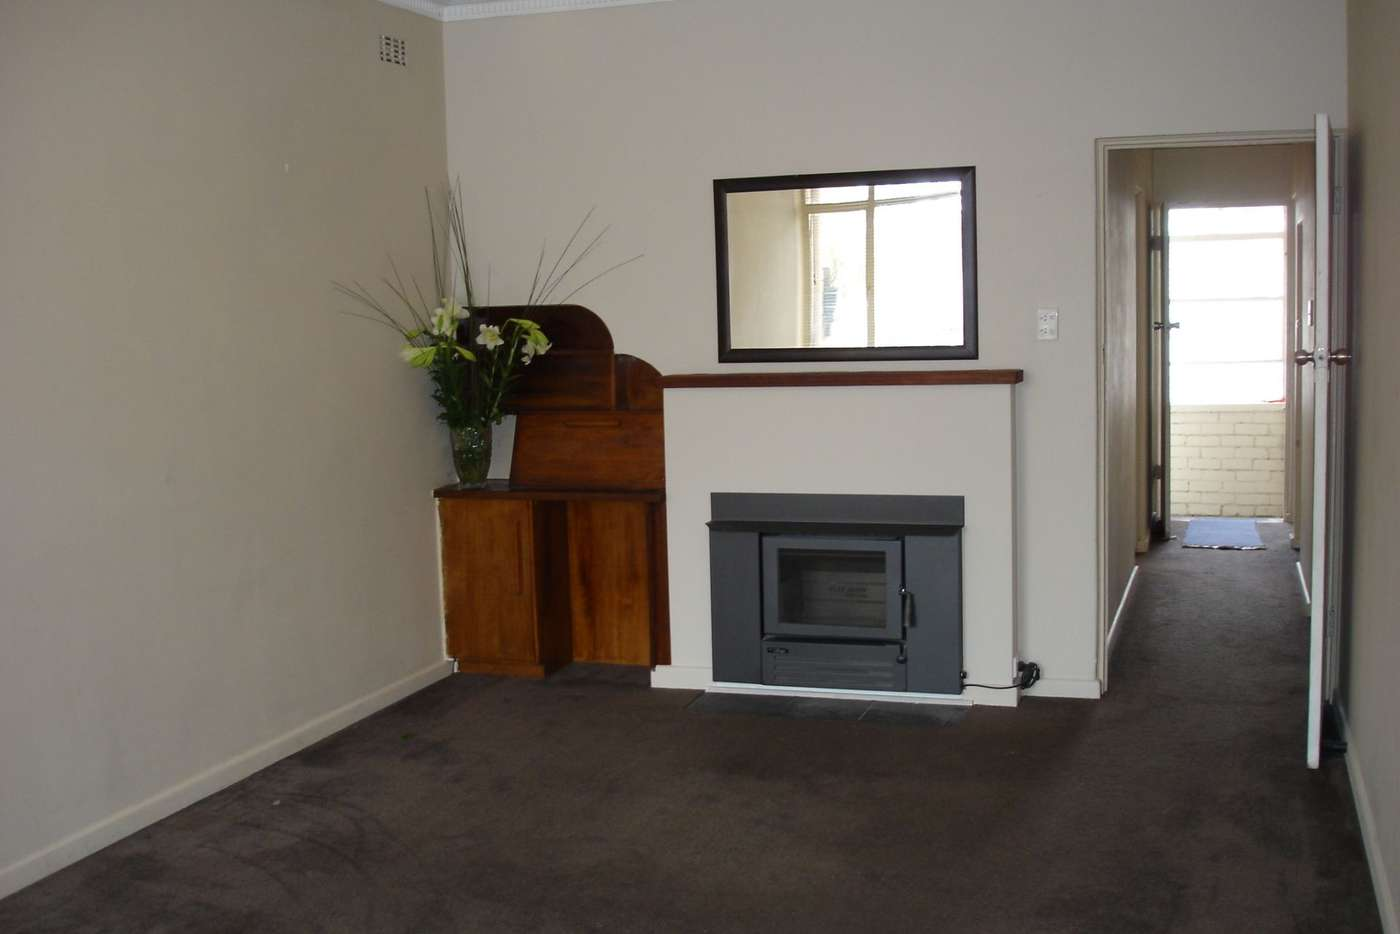 Sixth view of Homely house listing, 48 Garfield Street, Richmond VIC 3121